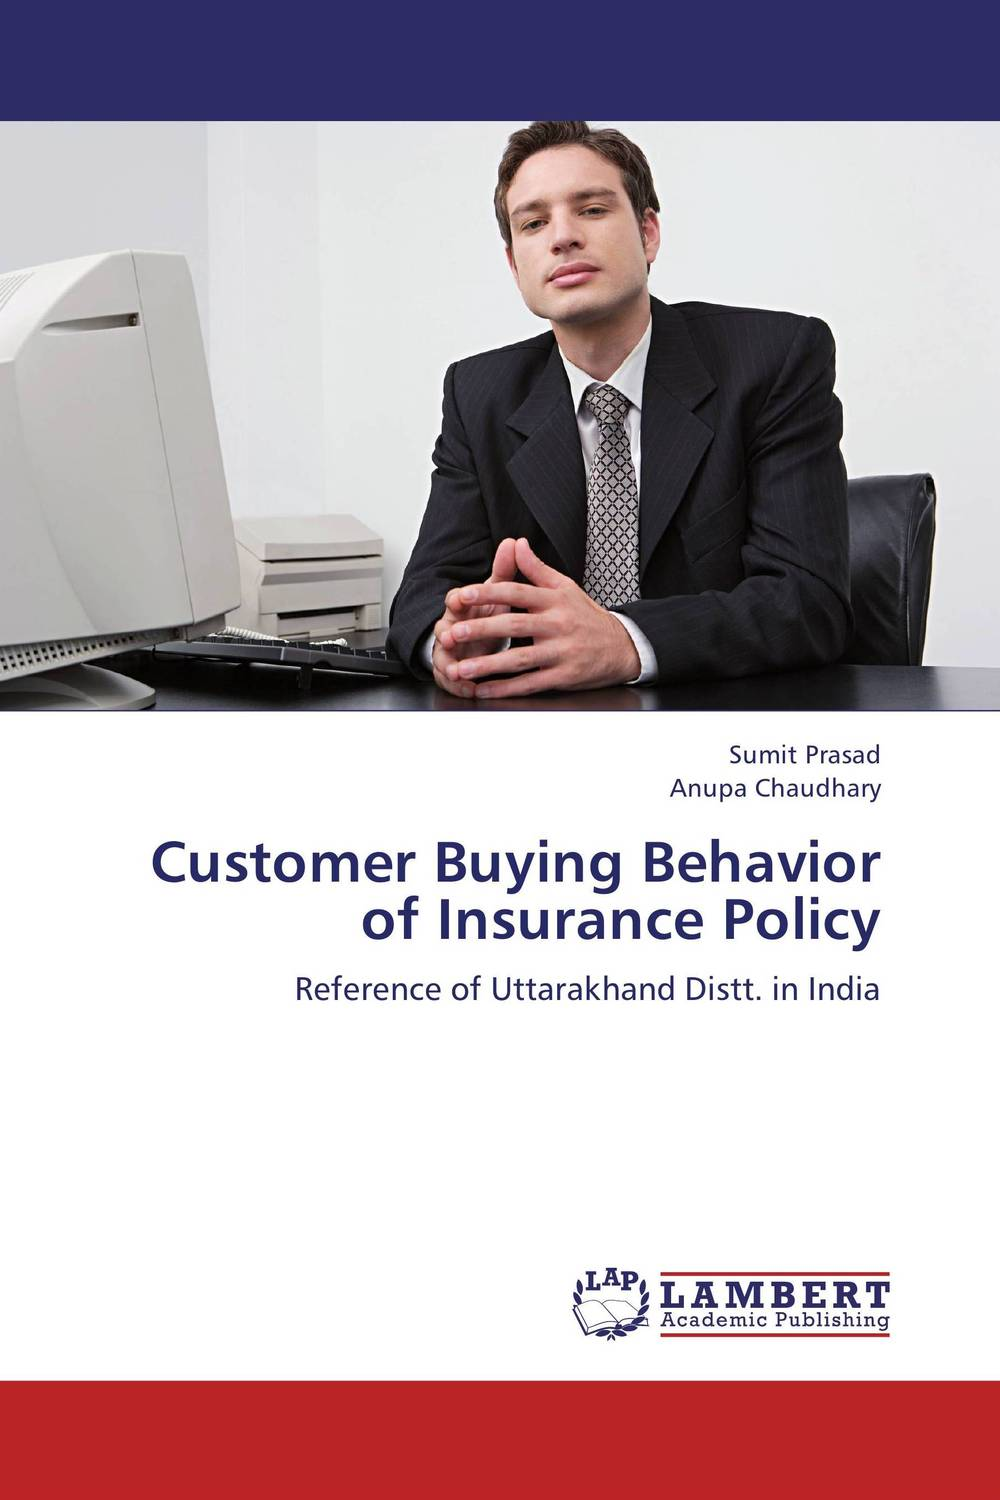 Customer Buying Behavior of Insurance Policy bruce bridgeman the biology of behavior and mind page 3